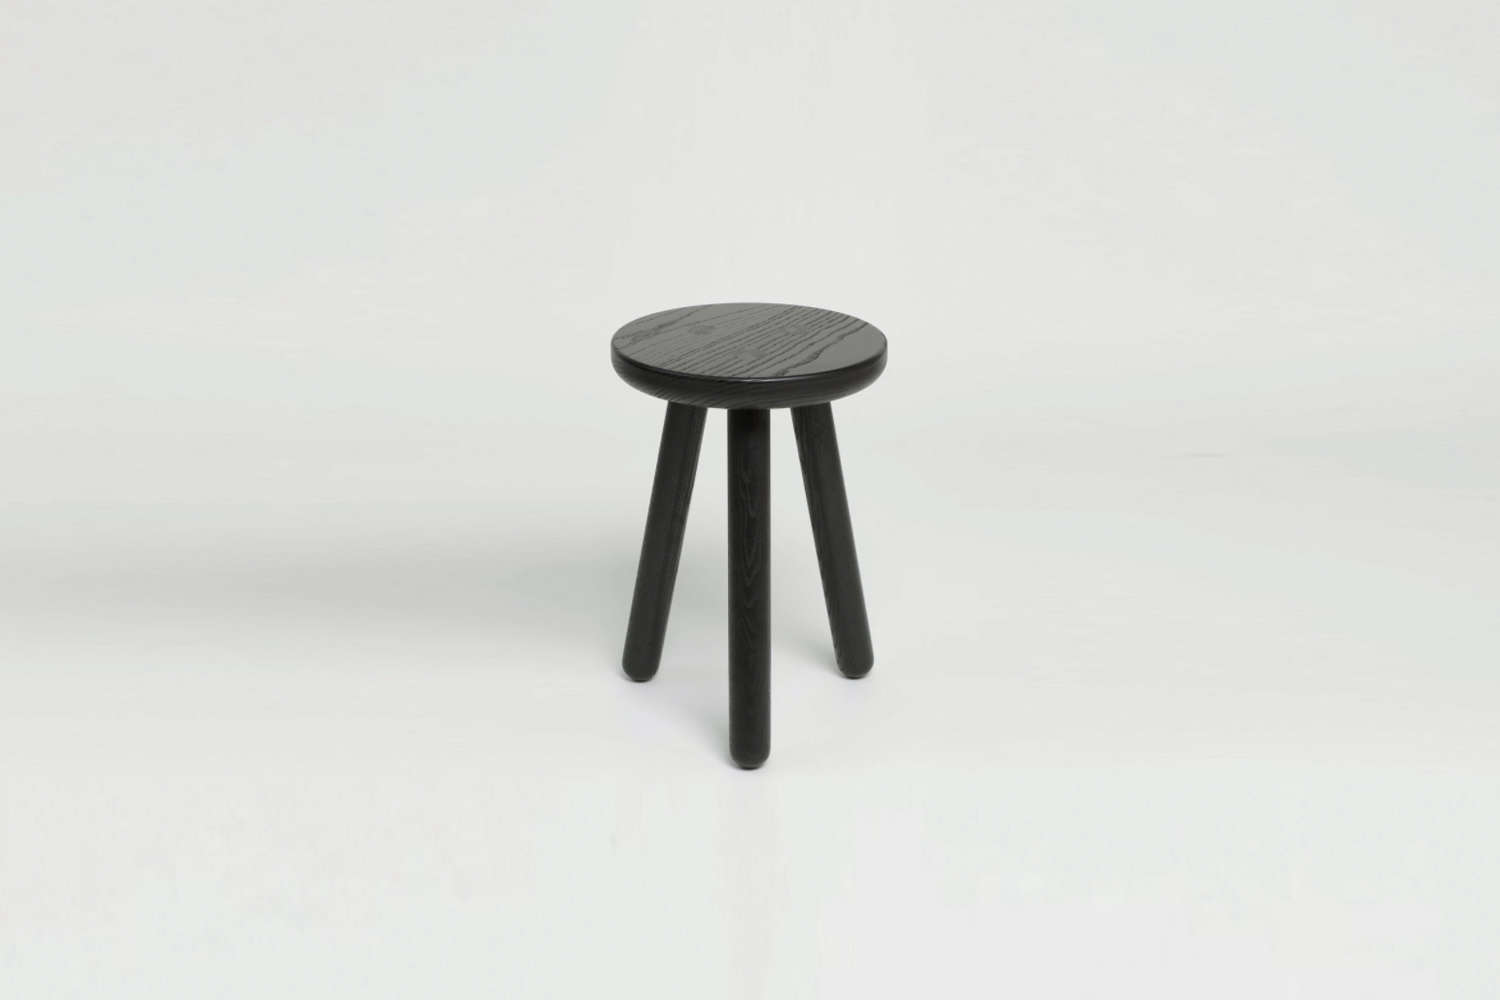 The Another Country Stool One in black wood is £